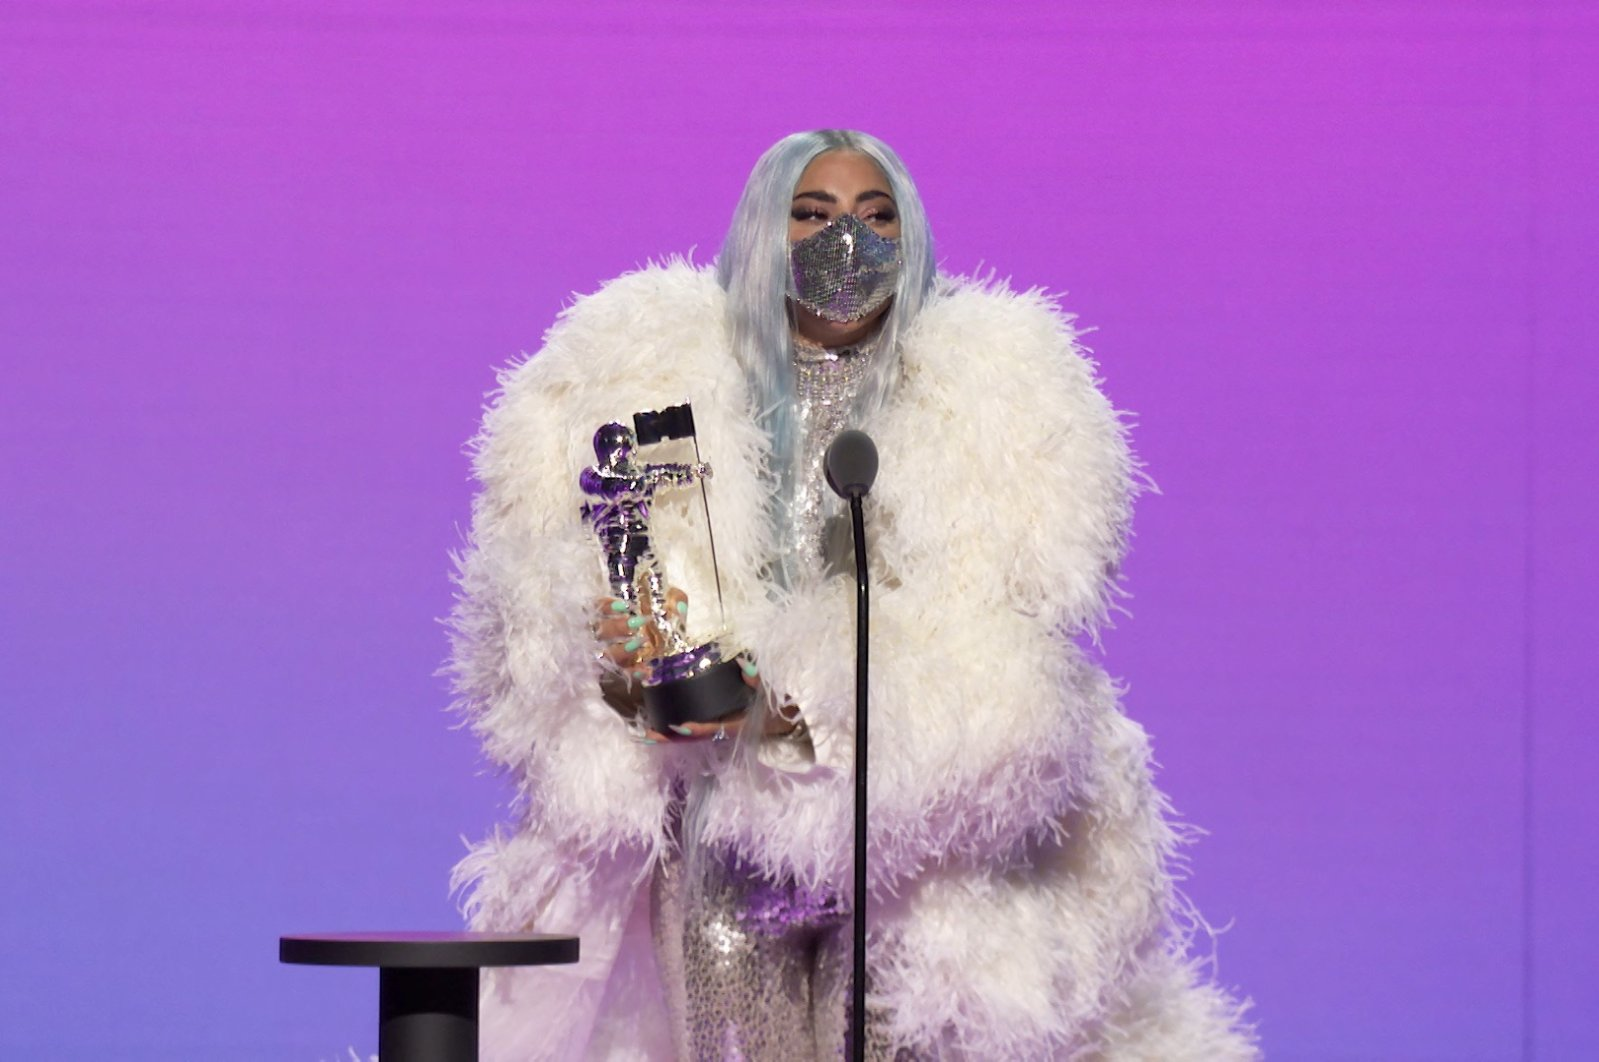 Lady Gaga accepts the Artist of the Year award during the 2020 MTV VMAs in this screengrab image made available on Aug. 30, 2020. (REUTERS PHOTO)